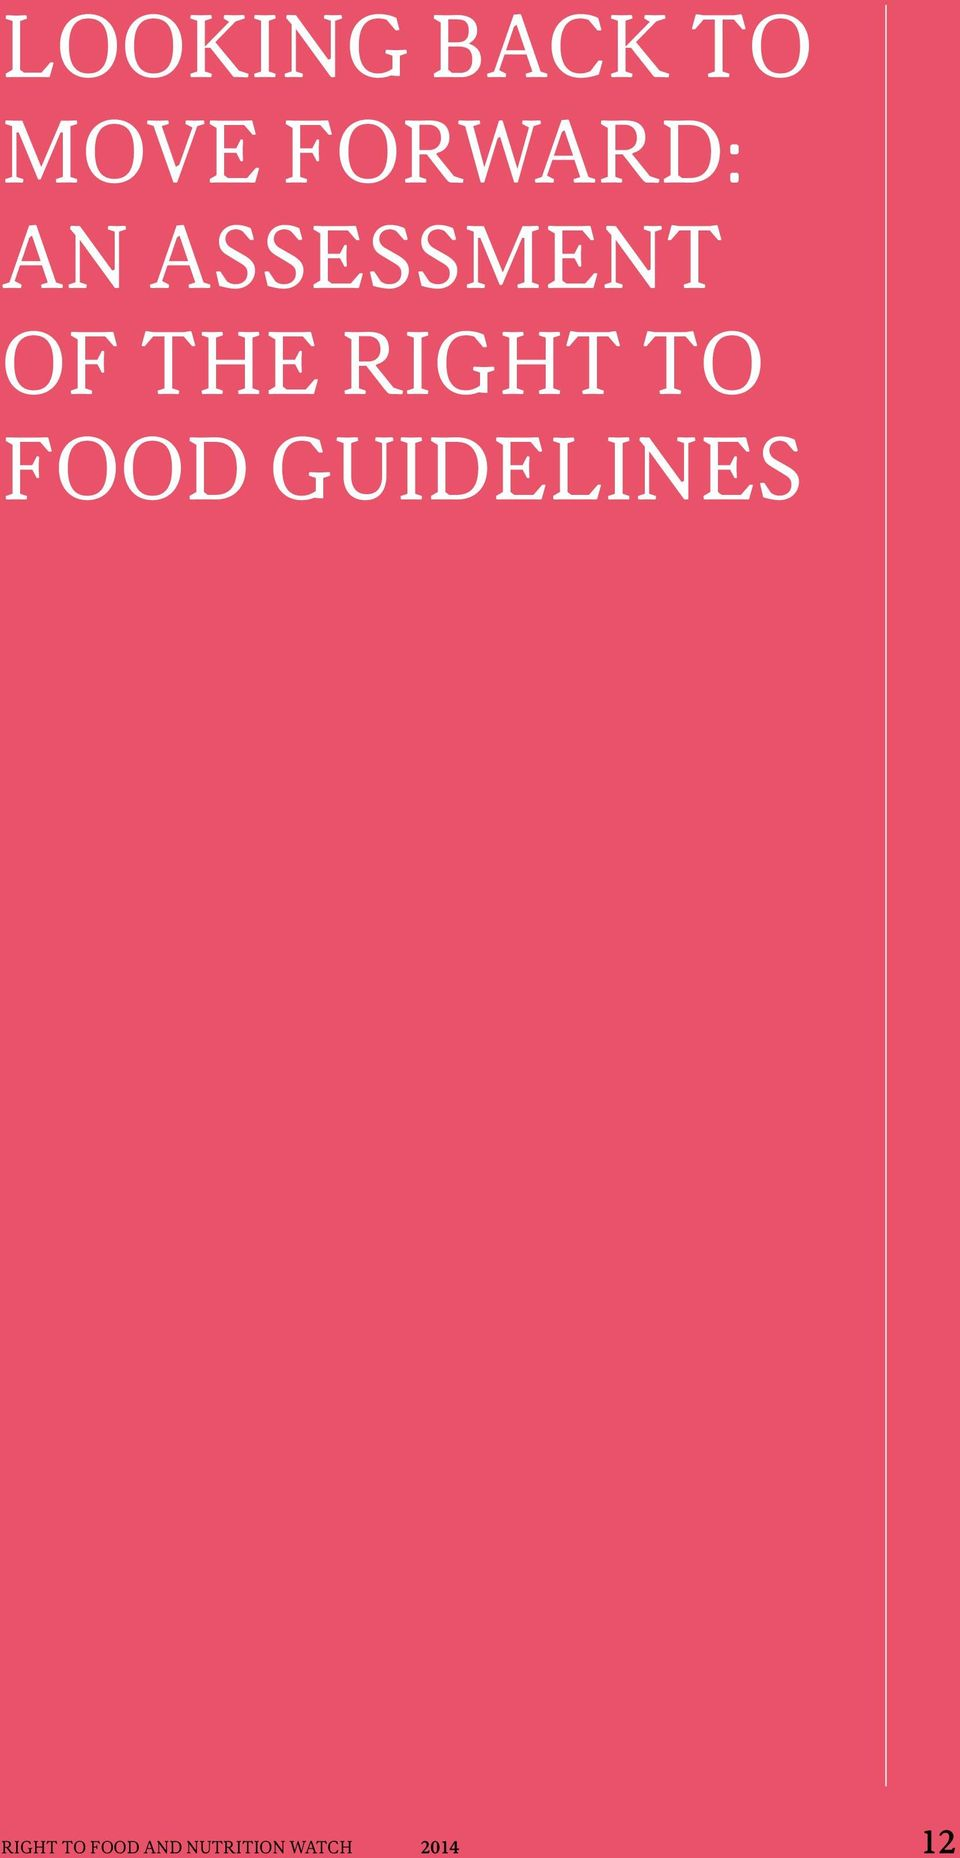 Food Guidelines Right to Food